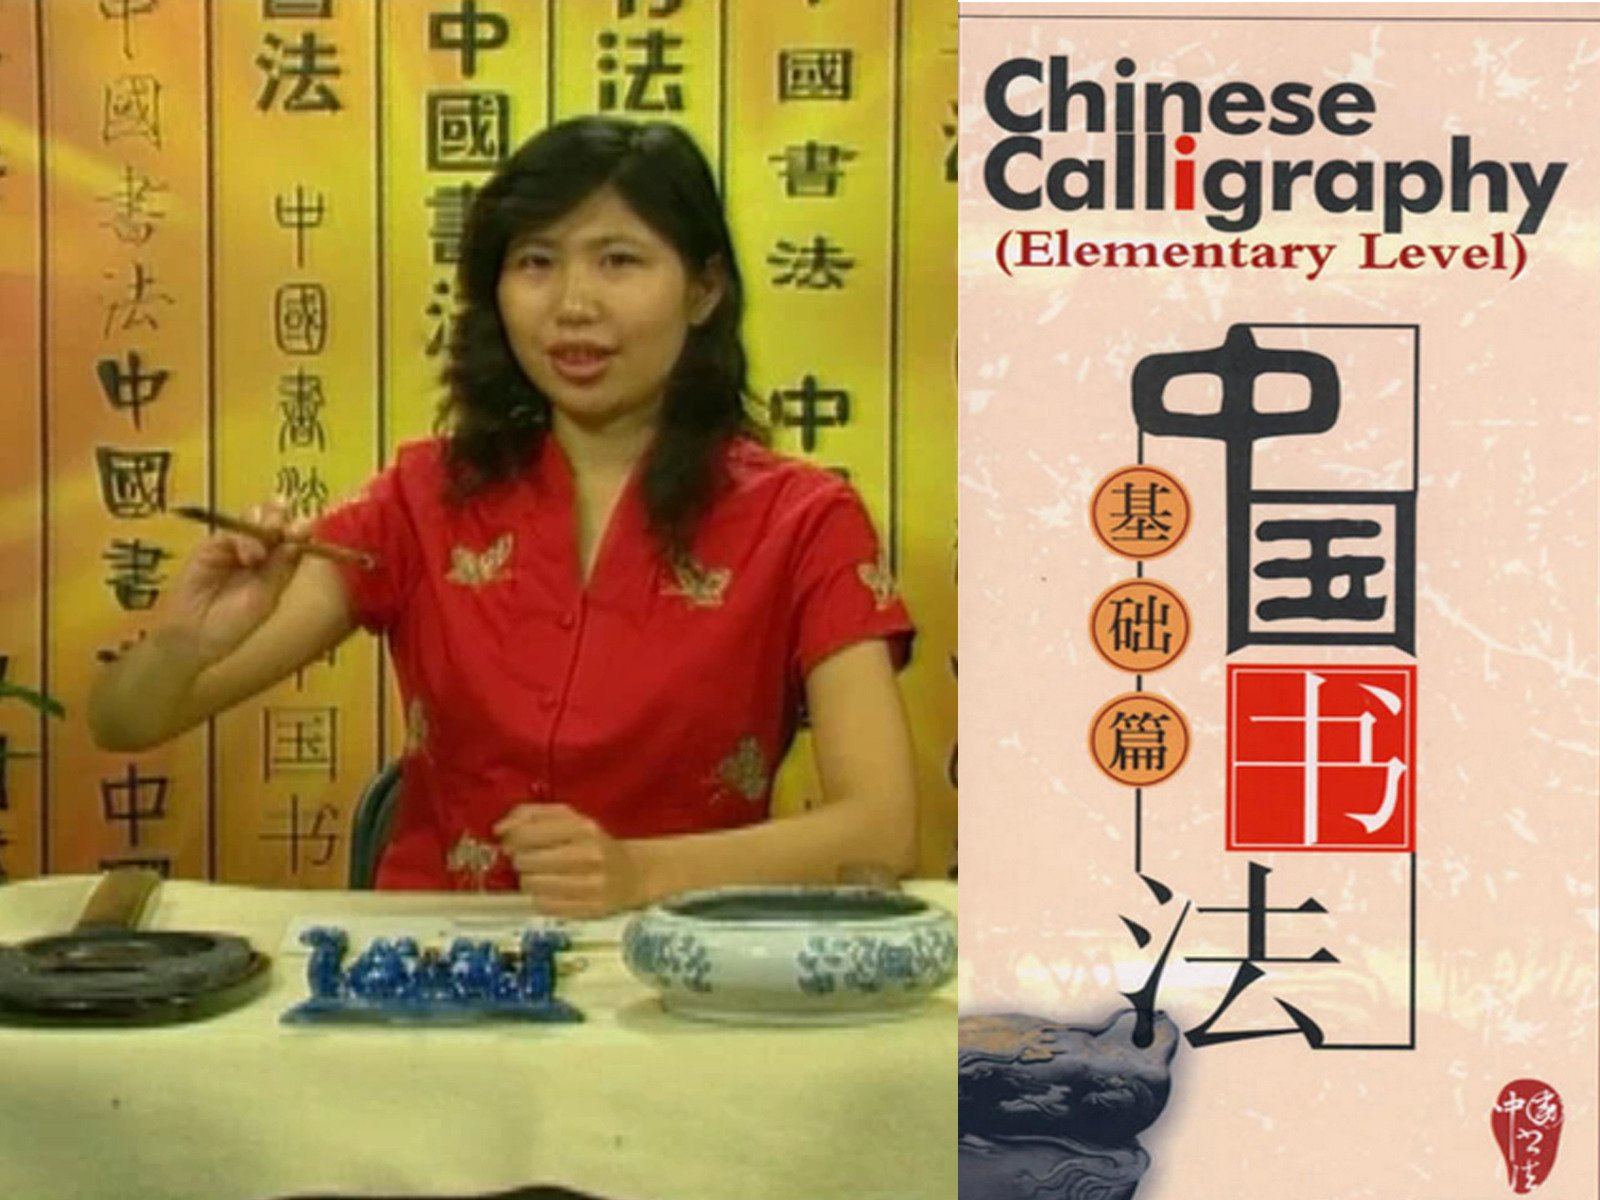 Chinese Calligraphy - Season 1